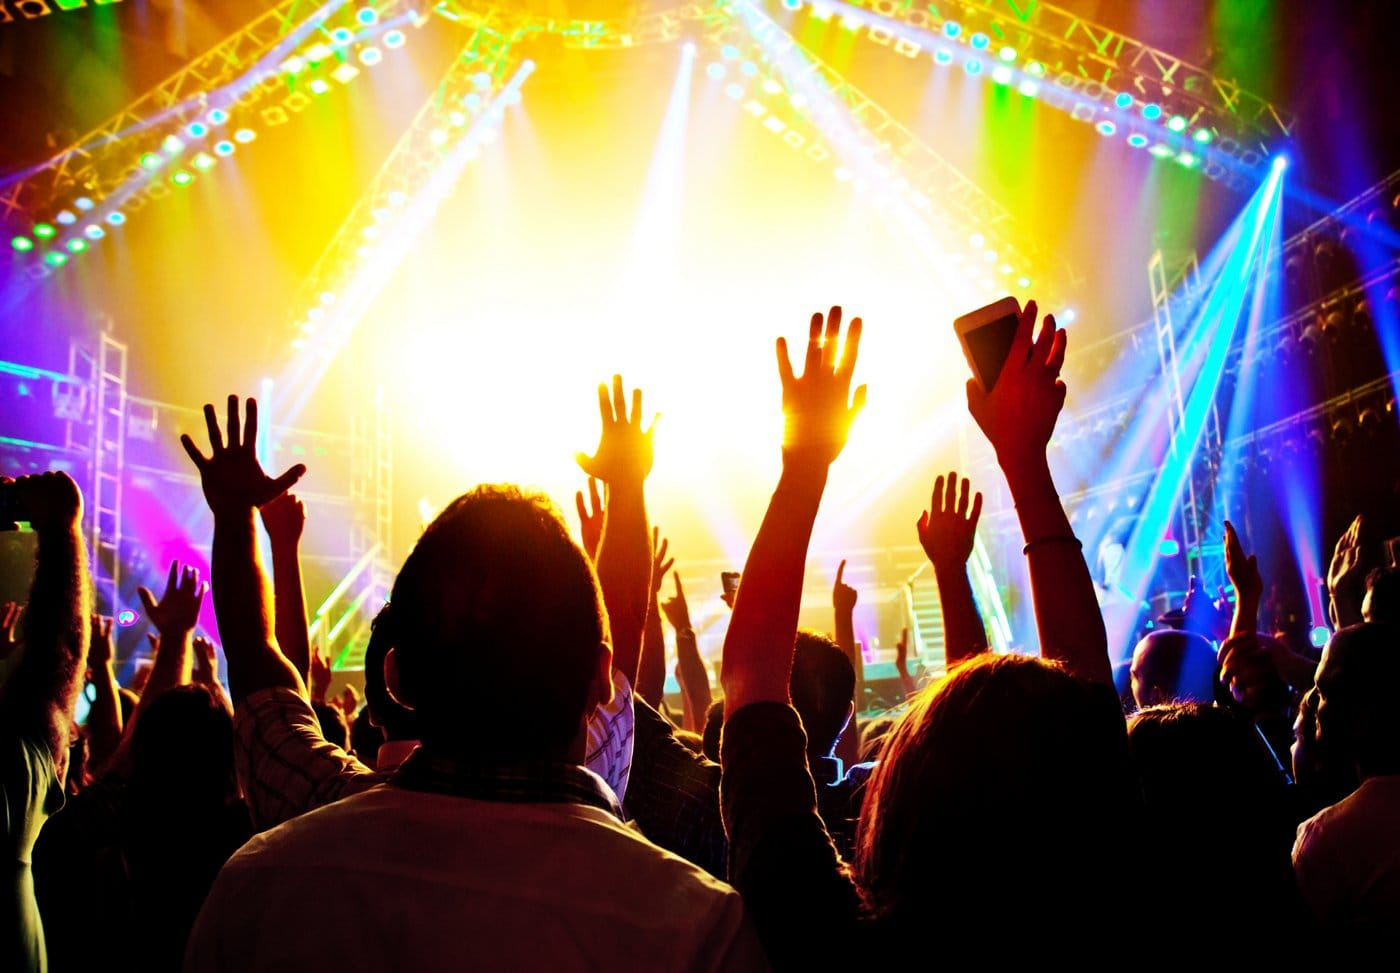 Rock concert stage and audience